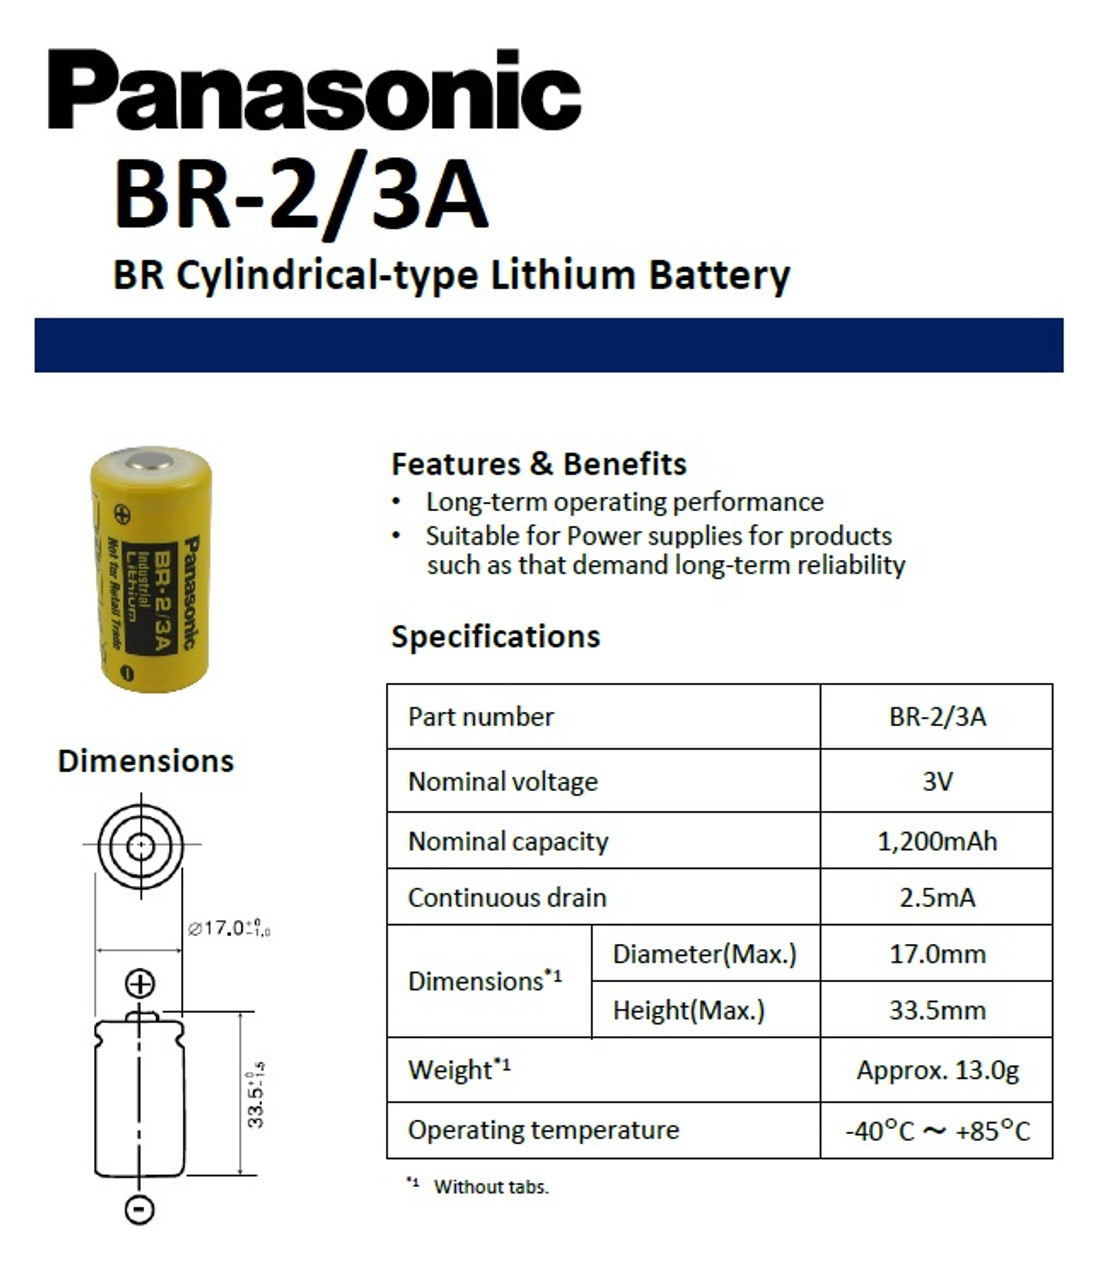 Panasonic BR-2/3A Lithium Battery Specifications